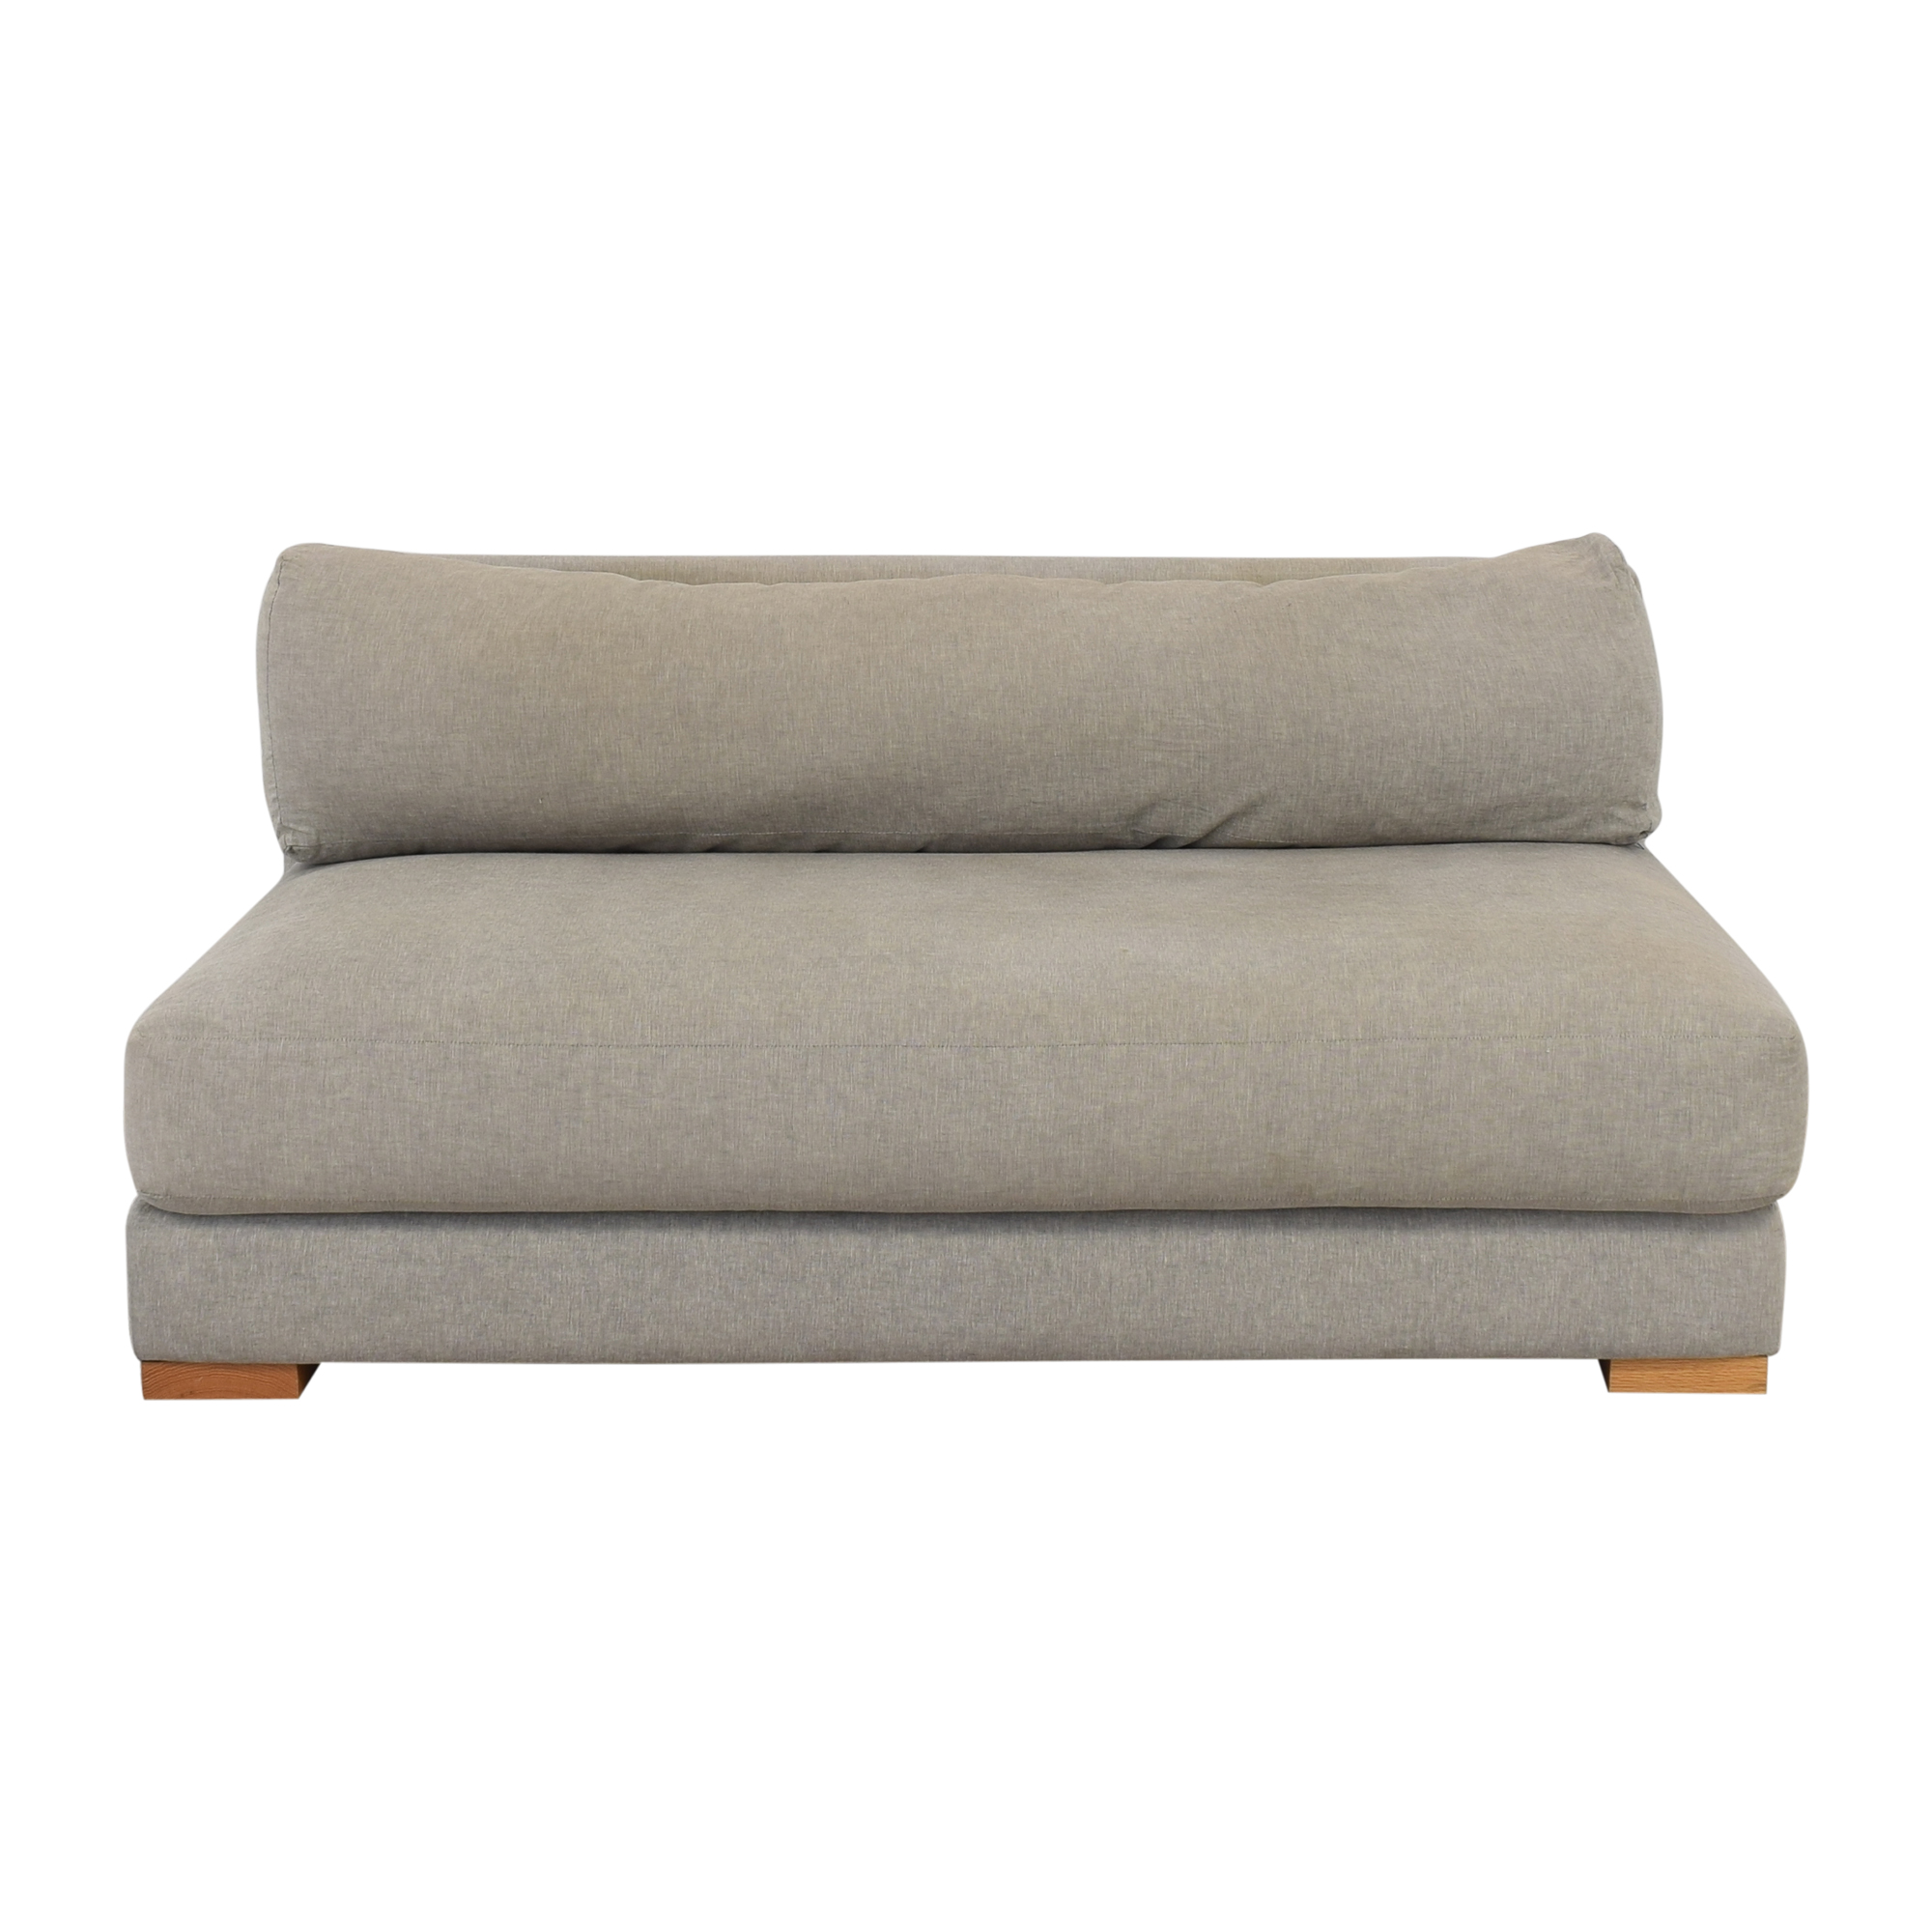 buy CB2 Piazza Apartment Sofa CB2 Sofas